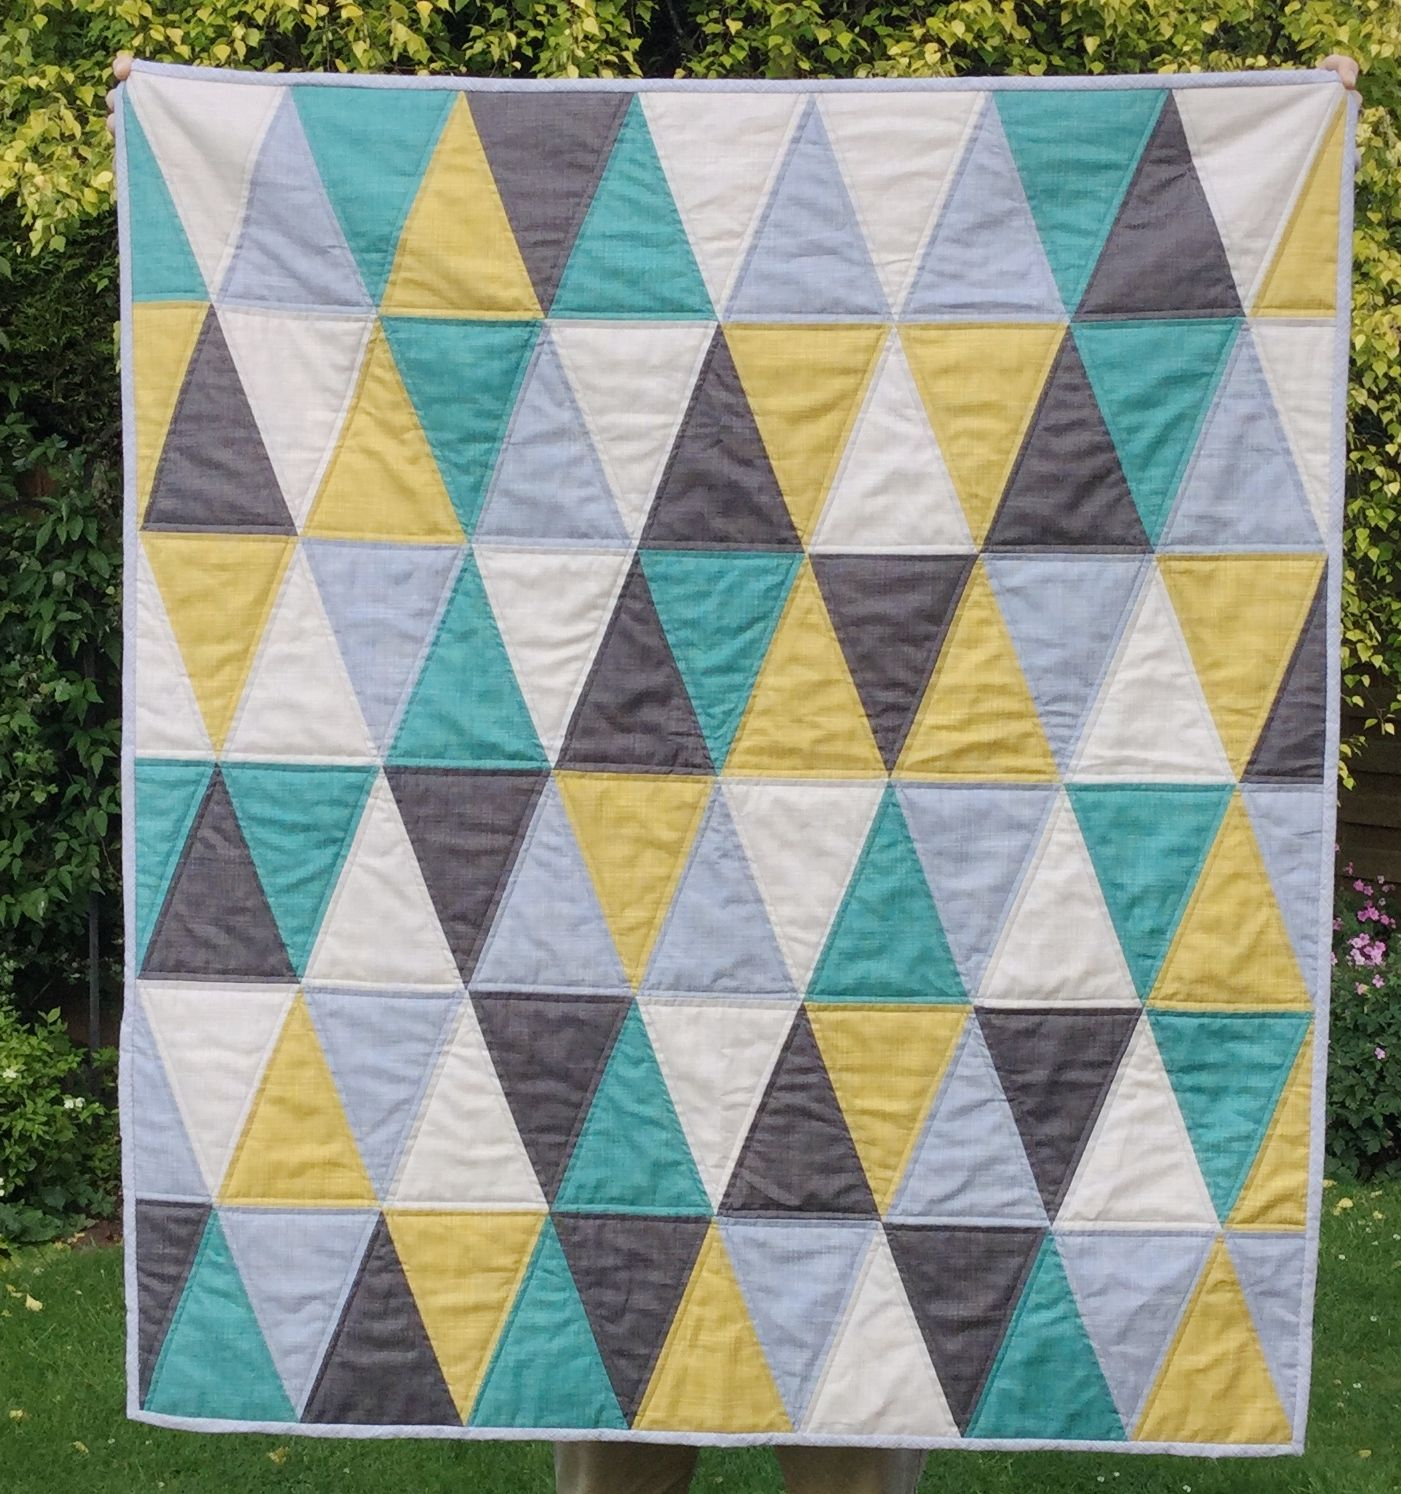 Free baby bed quilt patterns - Triangle Baby Quilt Downloadable Pattern Gives Full Instructions And Templates For This Quilt